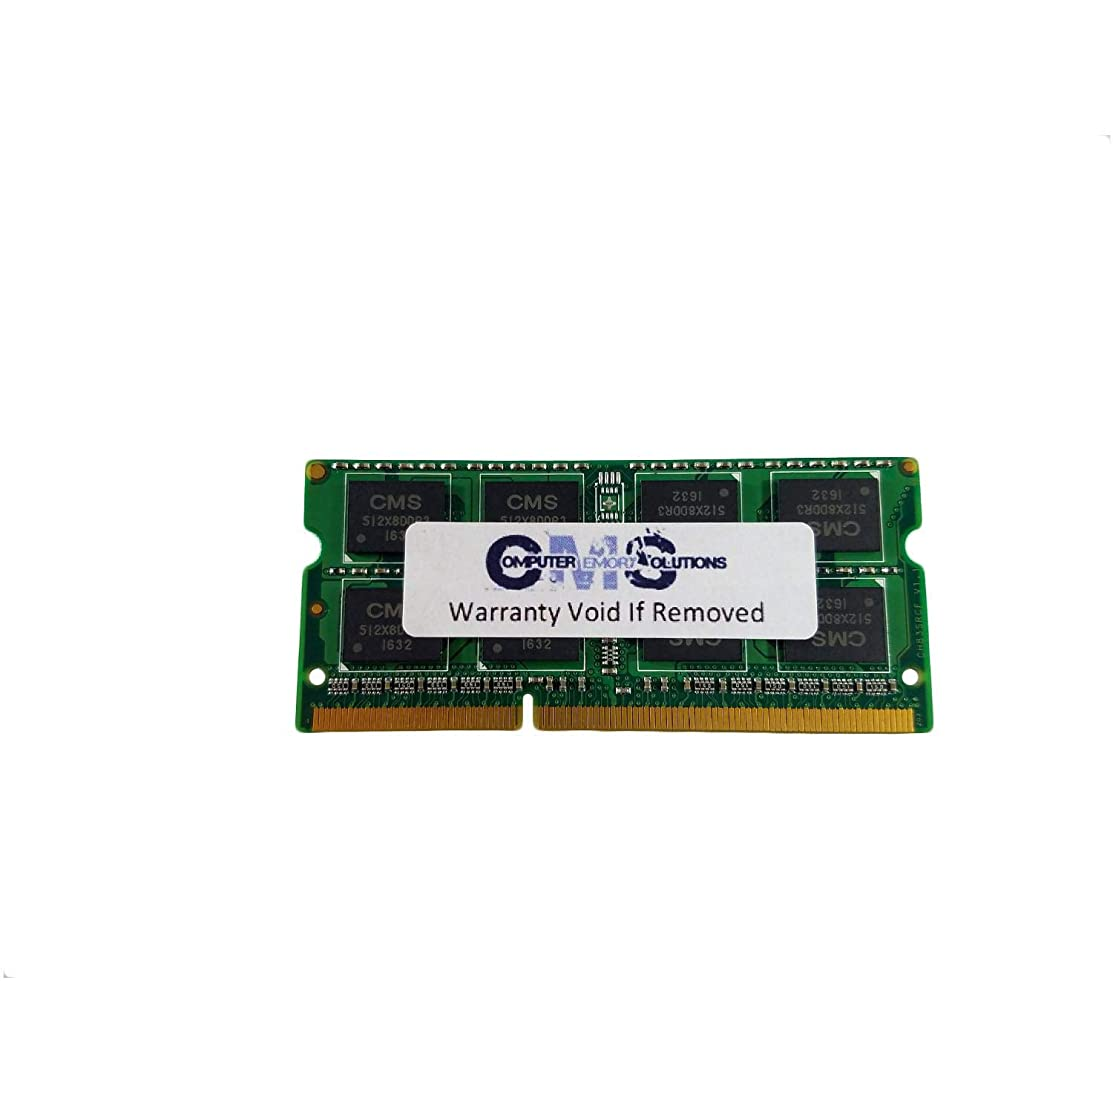 4Gb (1X4Gb) Ram Memory Compatible with Hp/Compaq Pavilion Dv6-3150Us, Dv6-3152Nr, Dv6-3153Nr By CMS A30